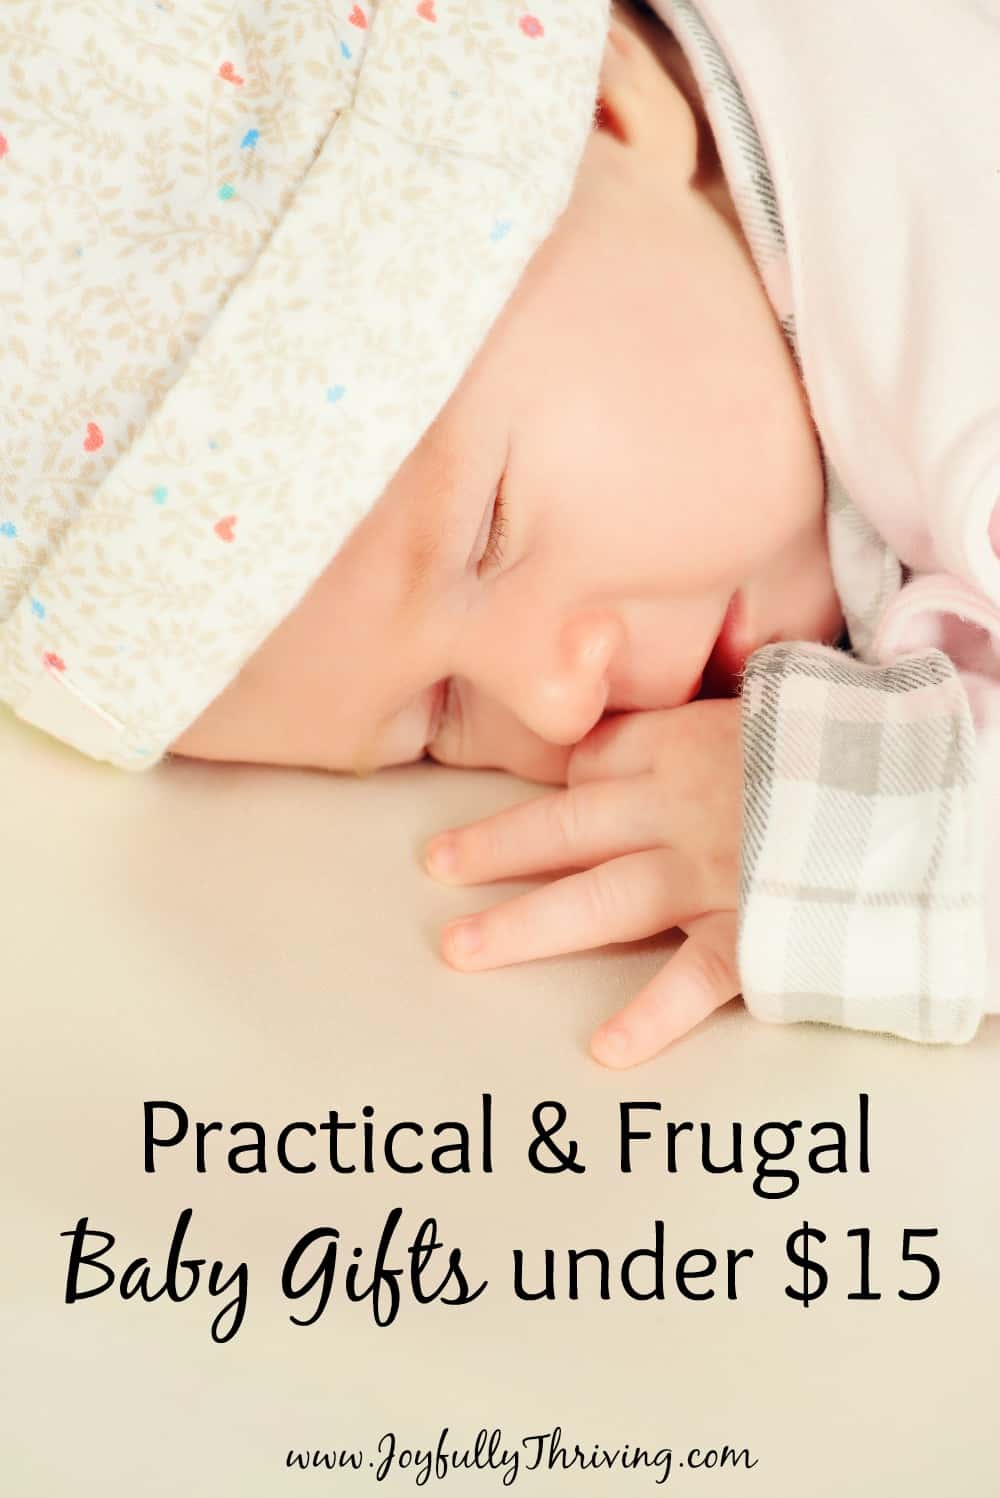 Baby Gift Ideas For Someone Who Has Everything : Frugal and practical baby gifts under